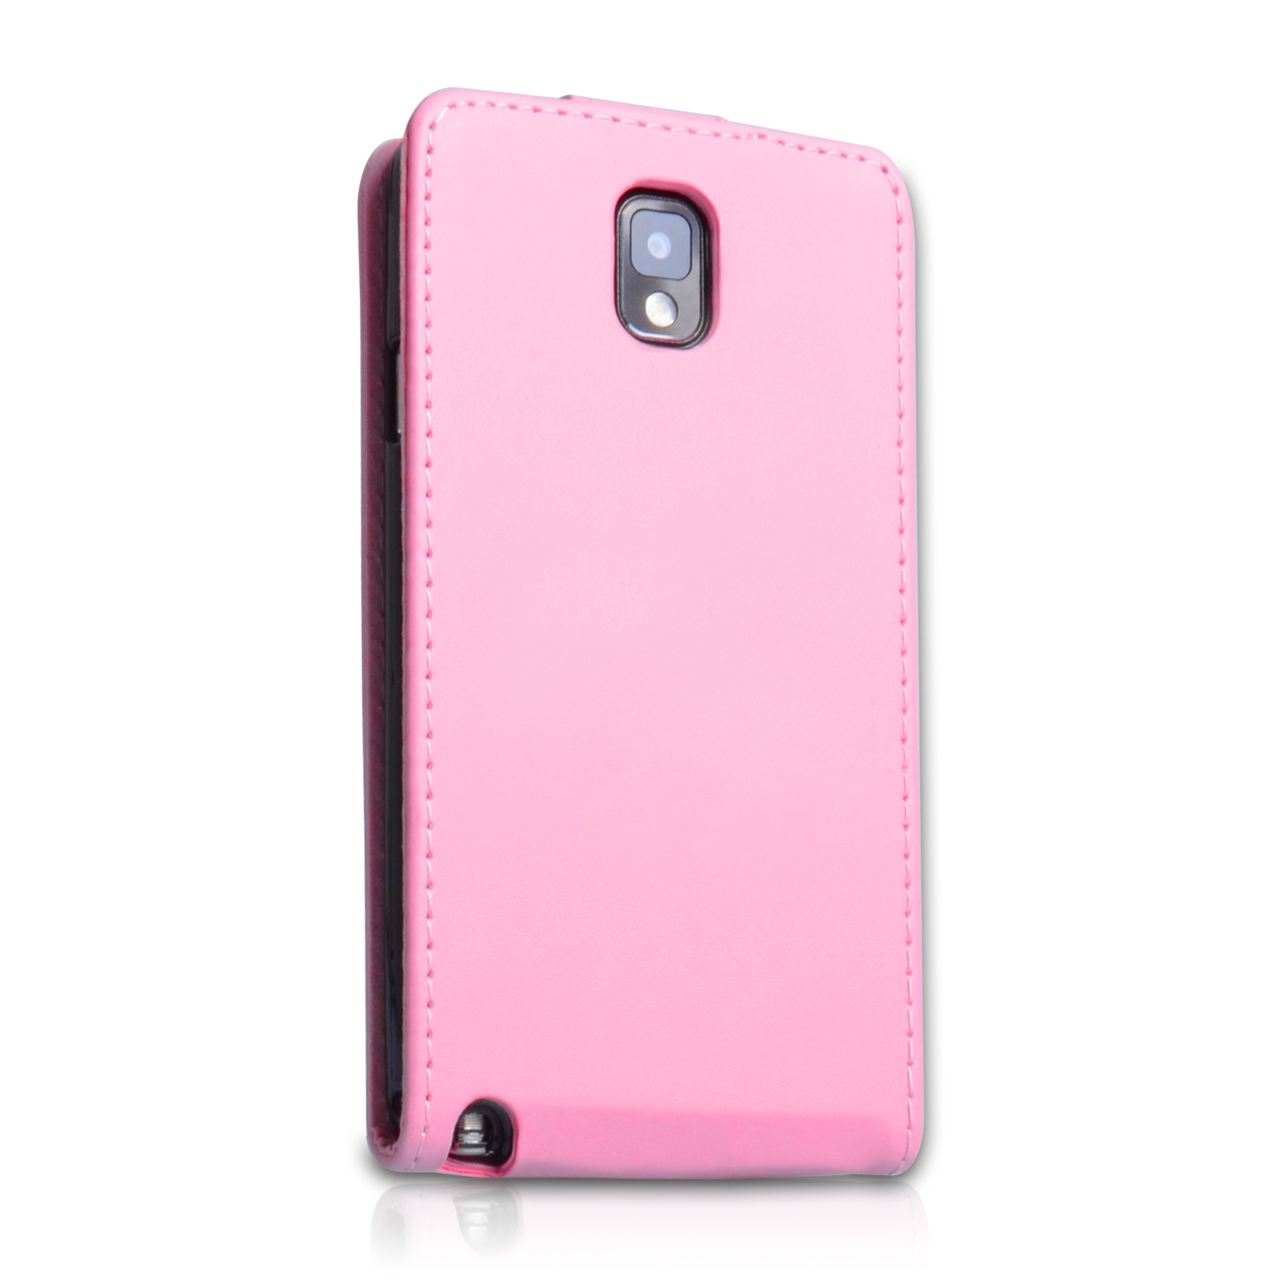 YouSave Samsung Galaxy Note 3 Leather Effect Flip Case - Baby Pink